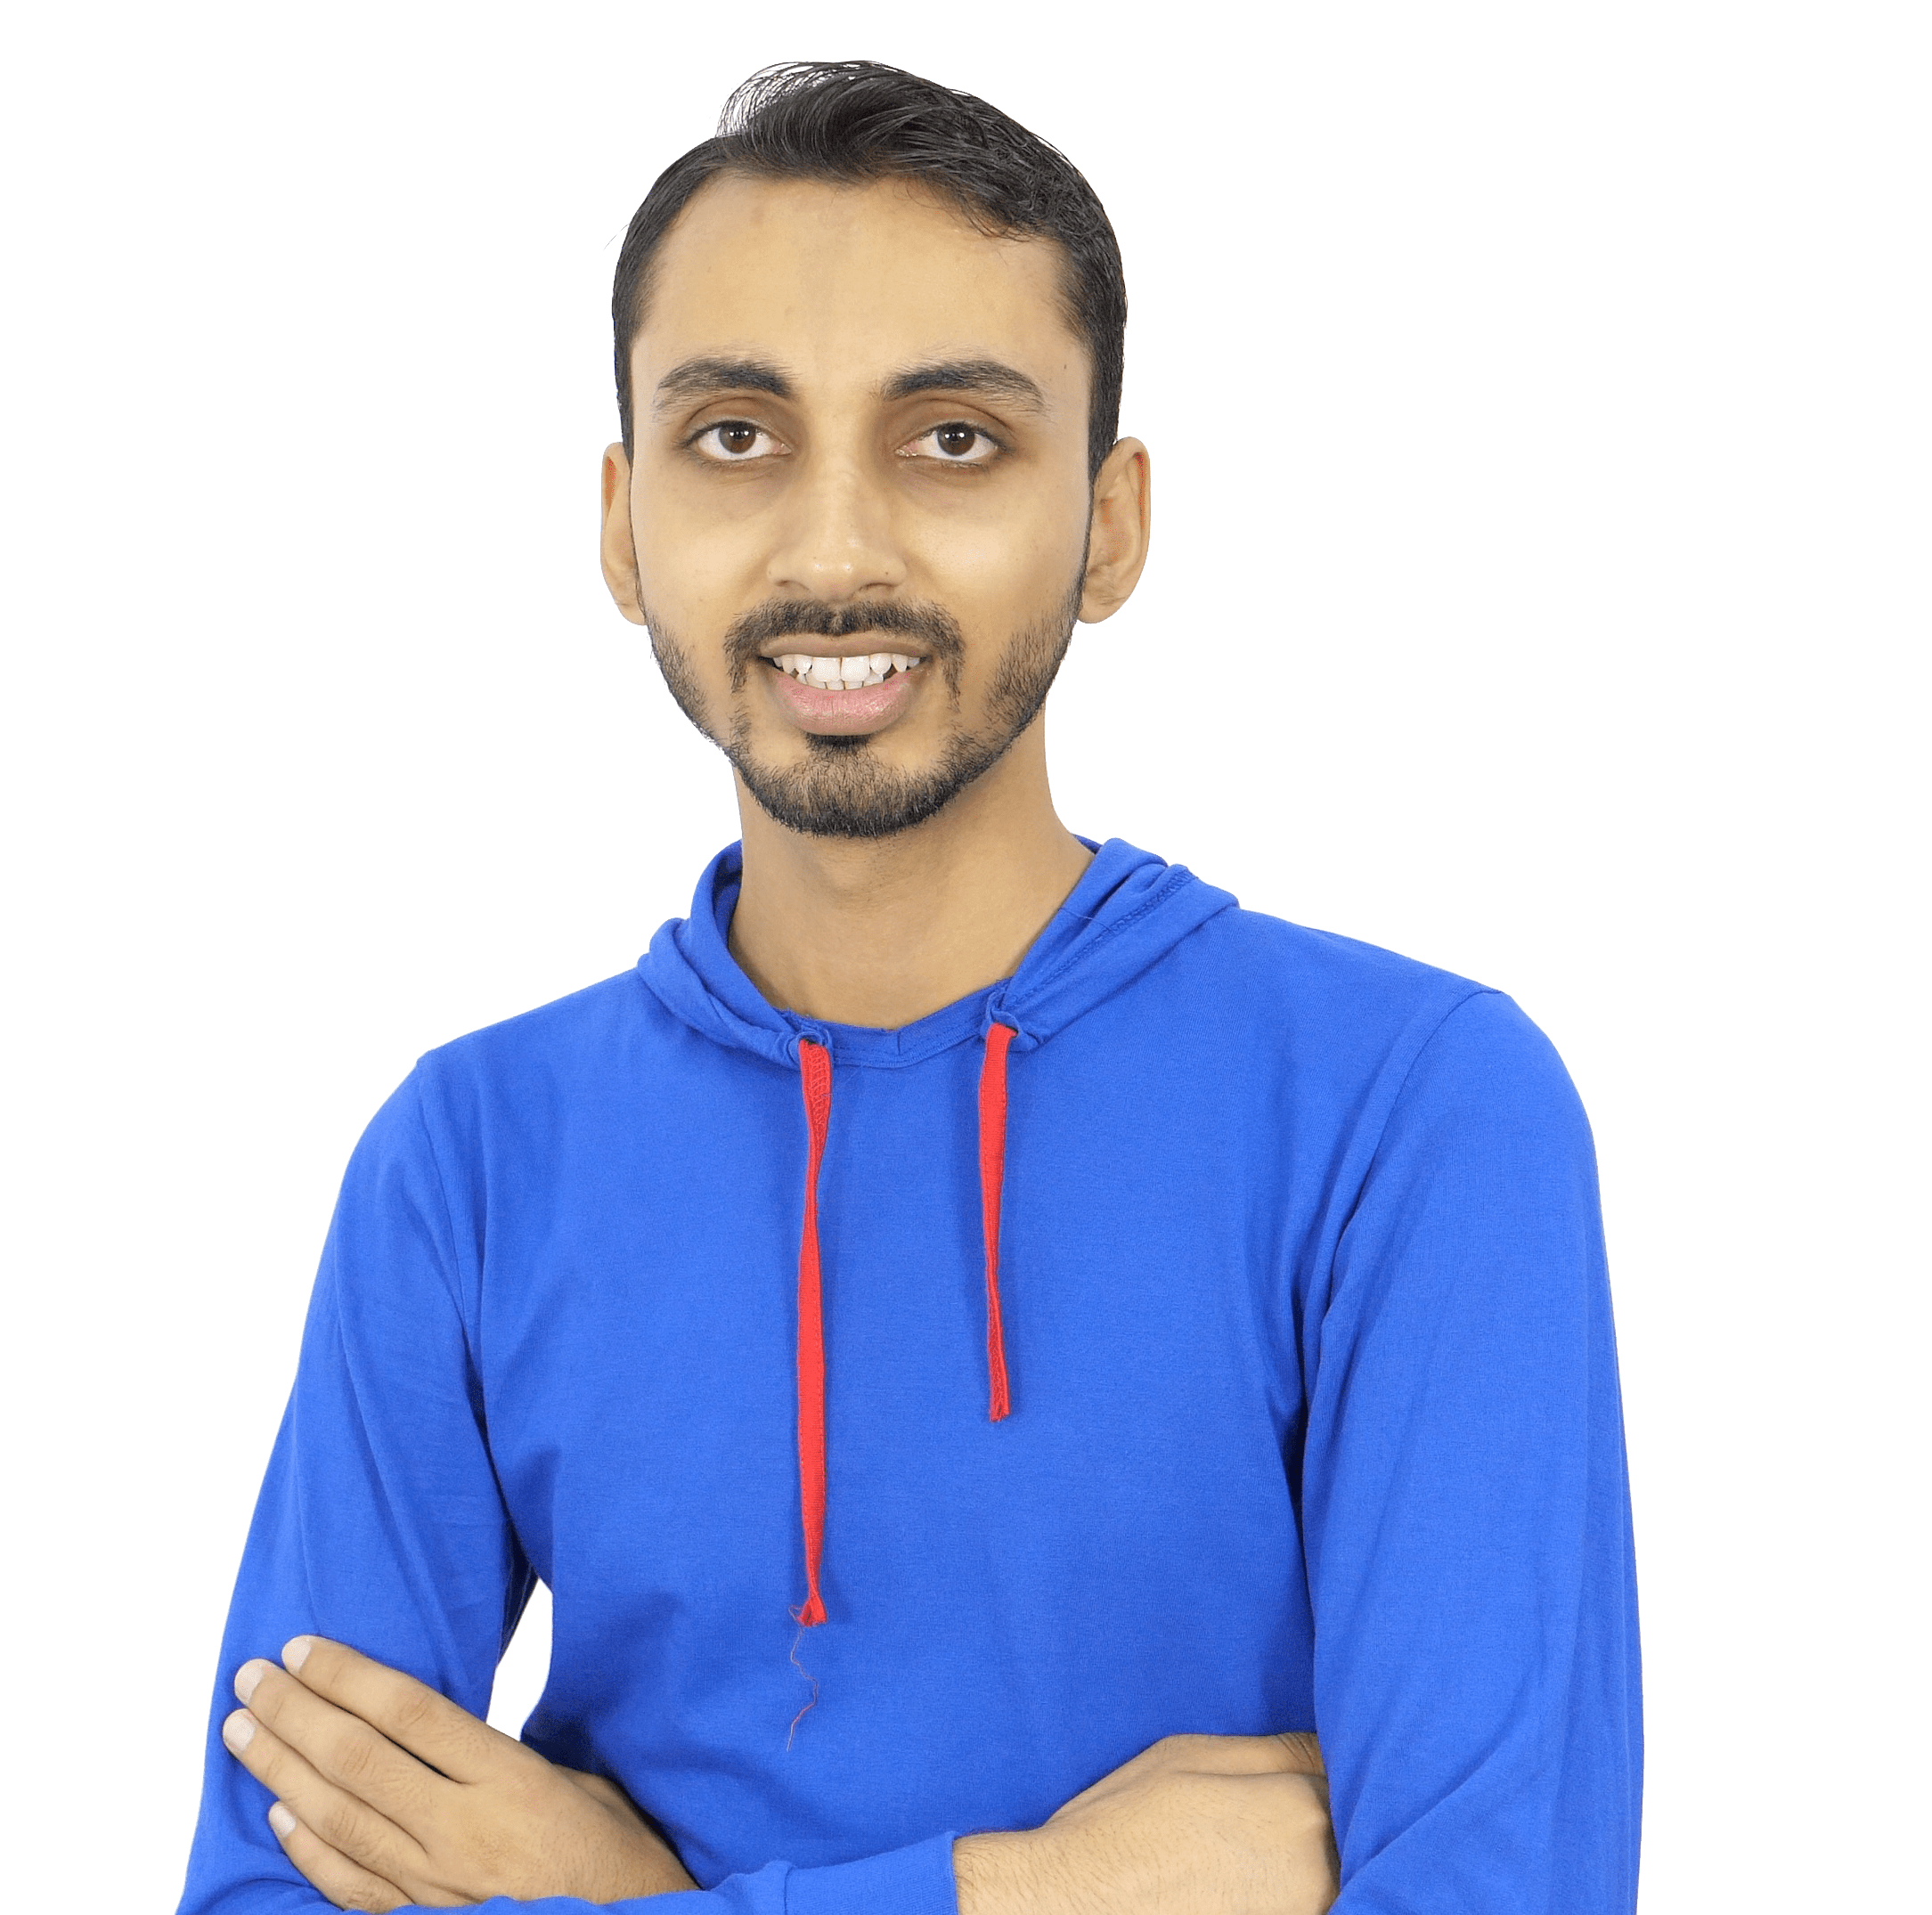 Rahul Dubey - Learn Digital with Rahul D